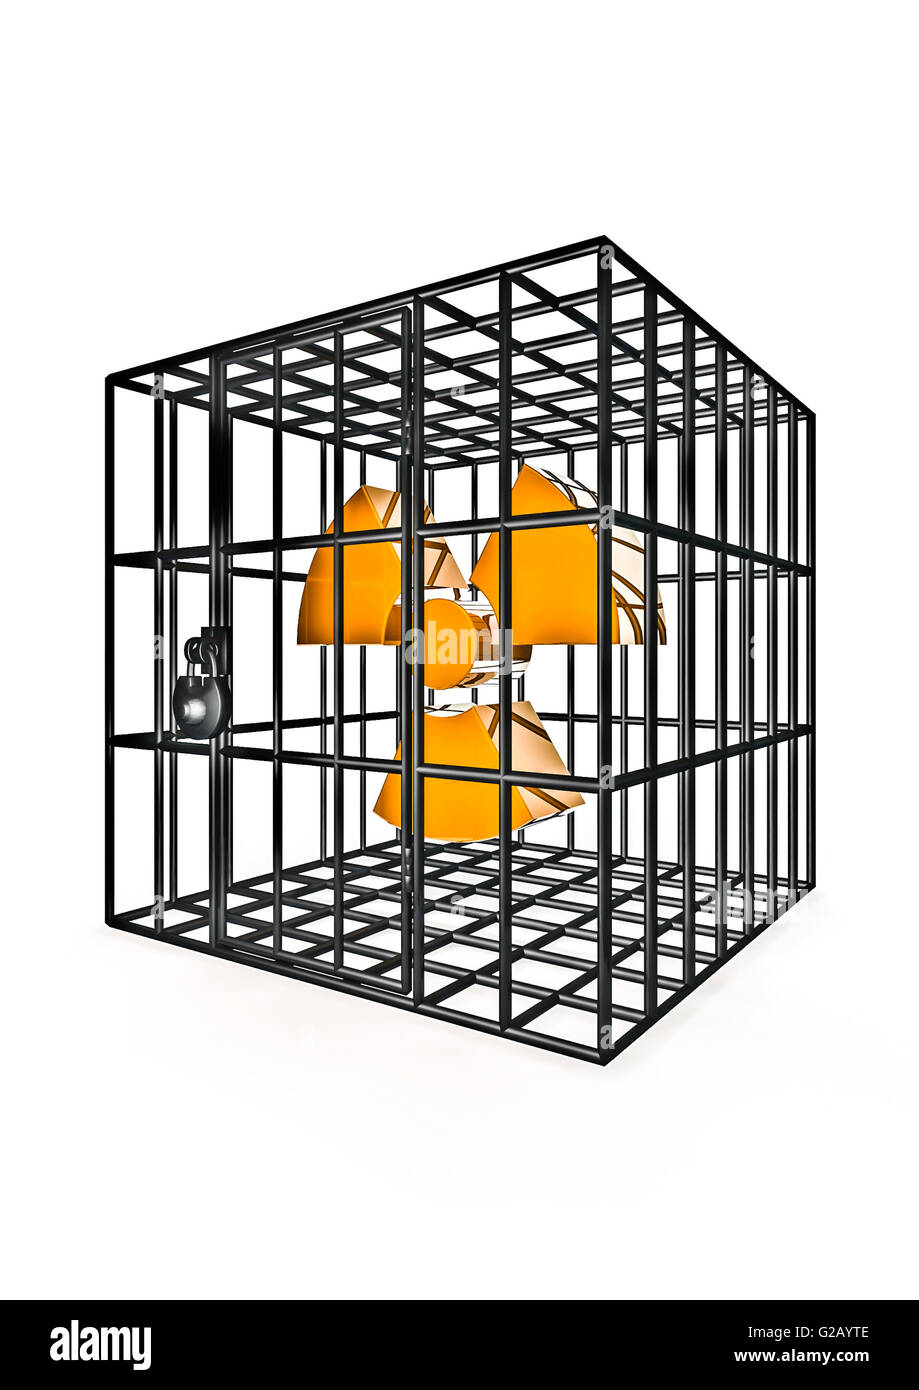 Caged nuclear / 3D render of nuclear energy symbol in metal cage - Stock Image